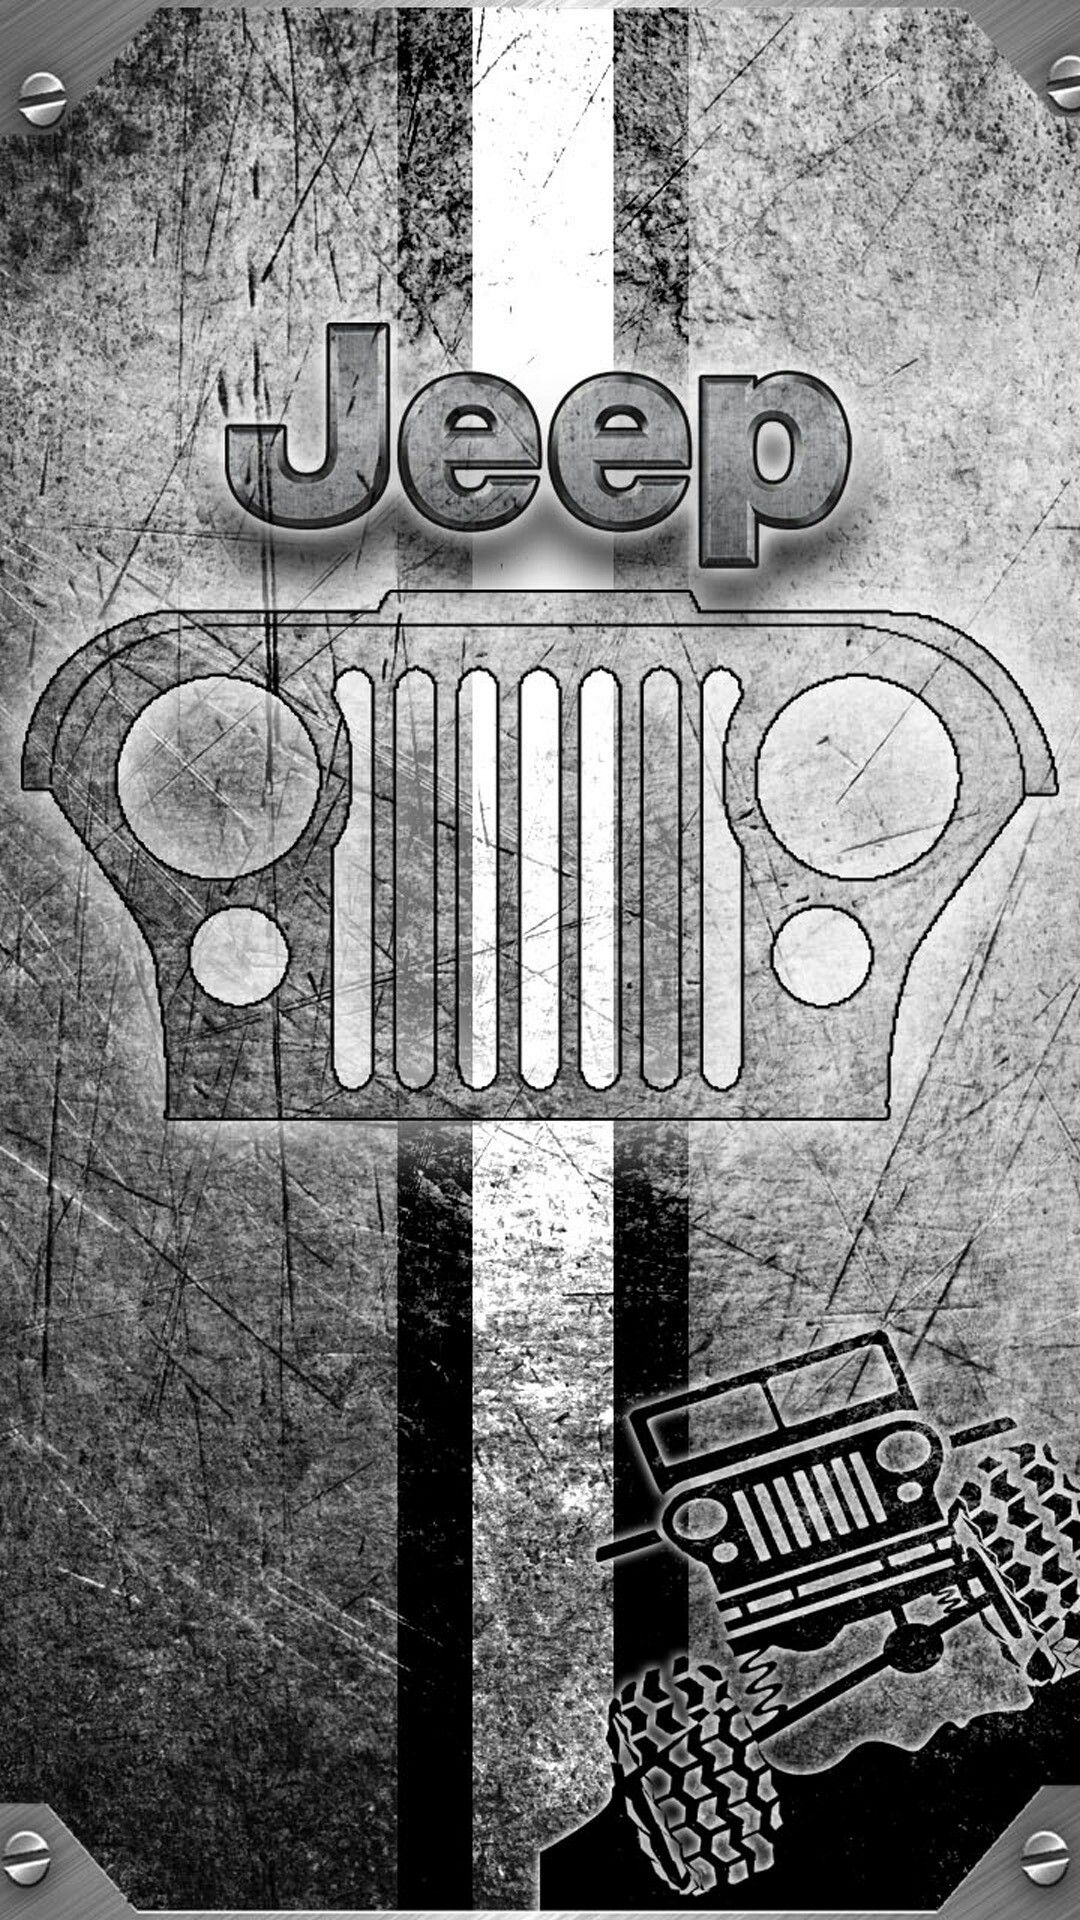 Pin By Justin On Jeep Jeep Wallpaper Jeep Renegade Jeep Patriot